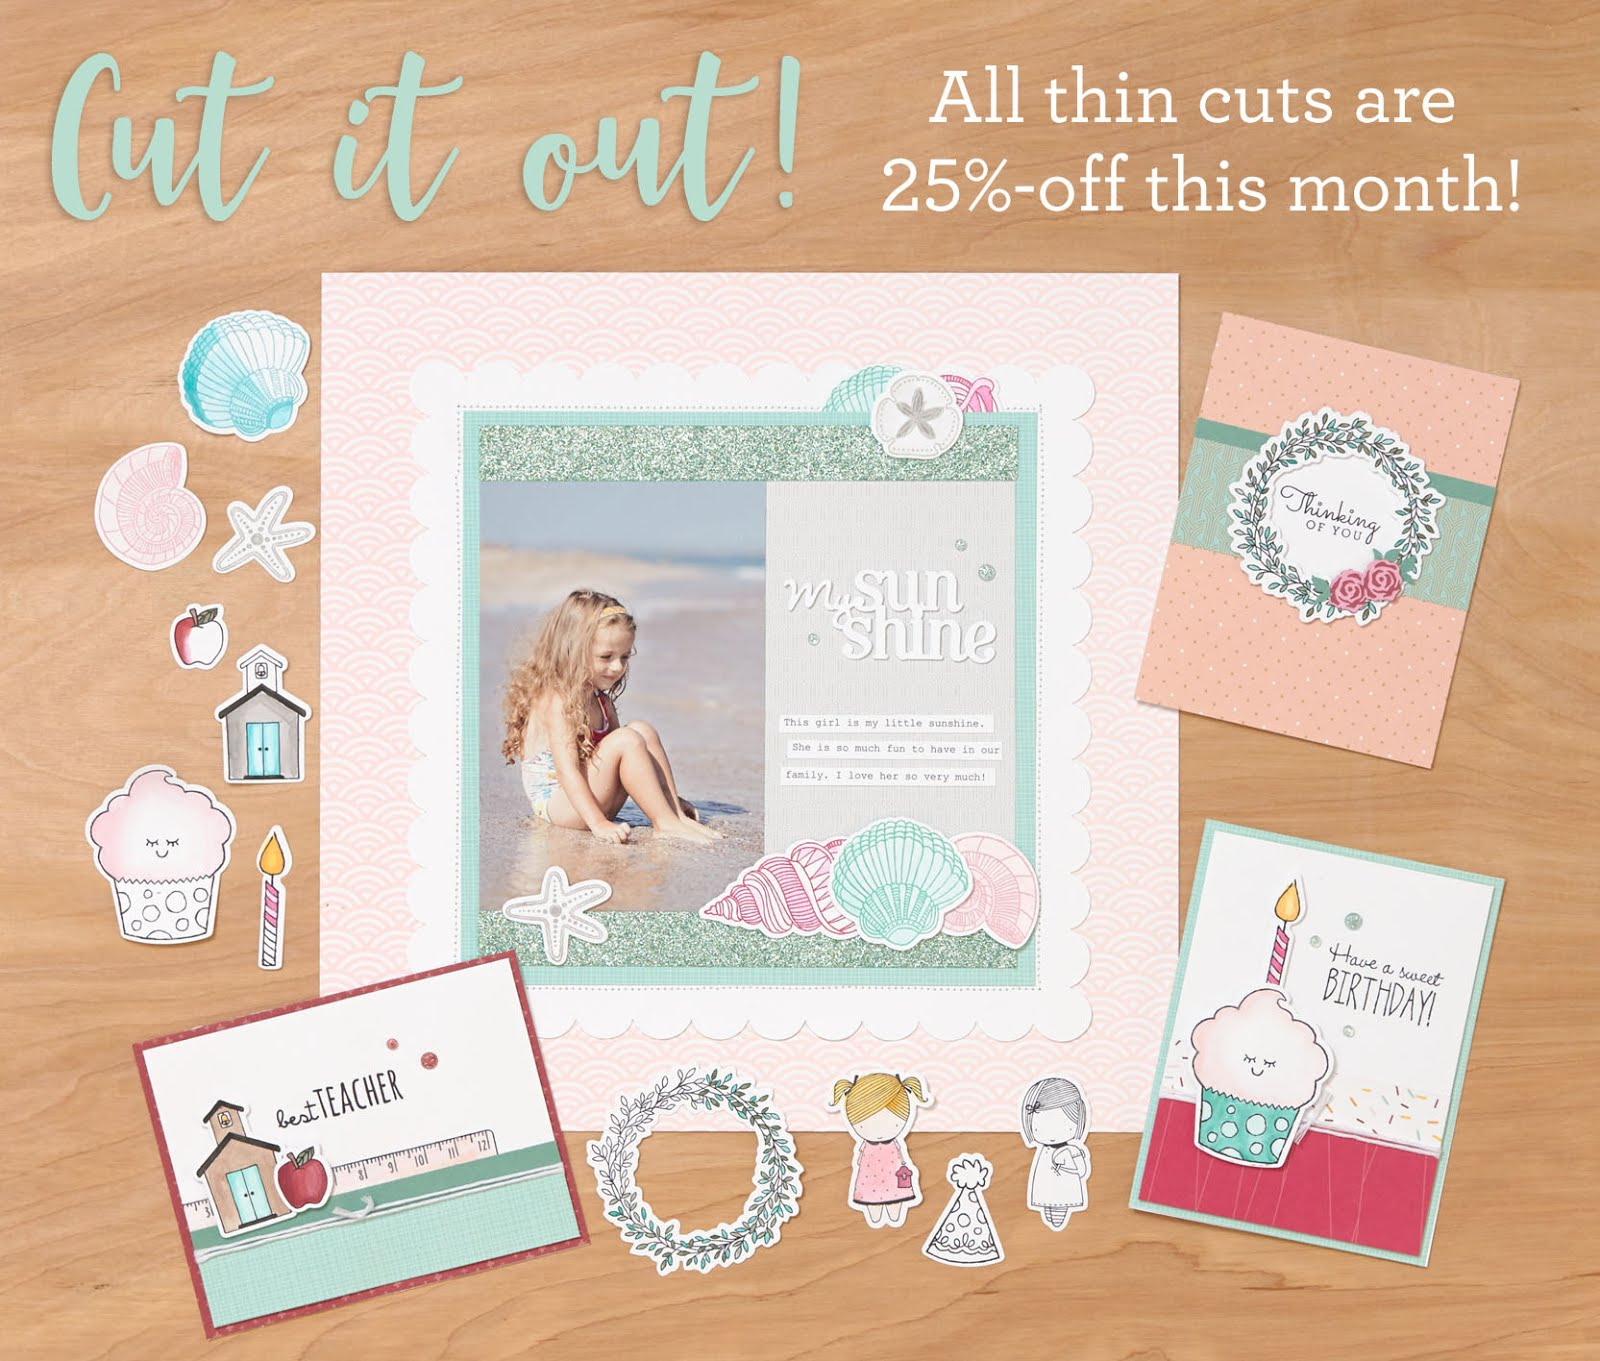 Cut it Out - 25% off all Thin Cuts!